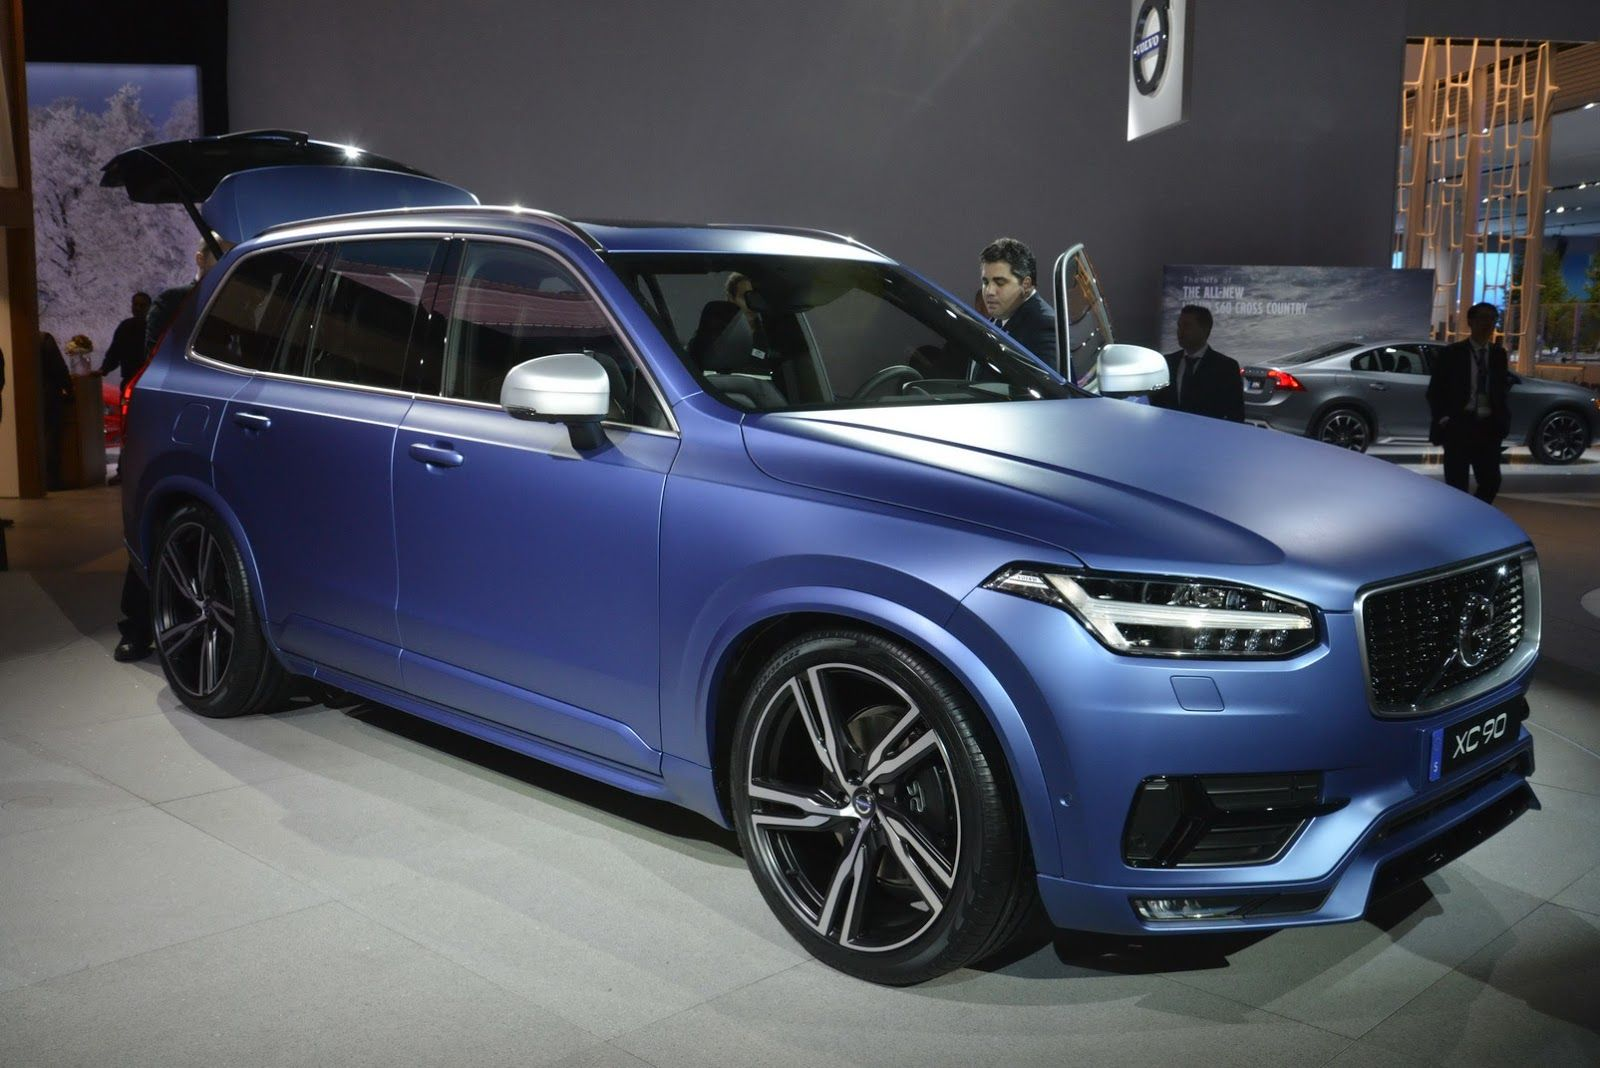 Volvo s 2016 xc90 r design makes north american debut in a cool matte blue